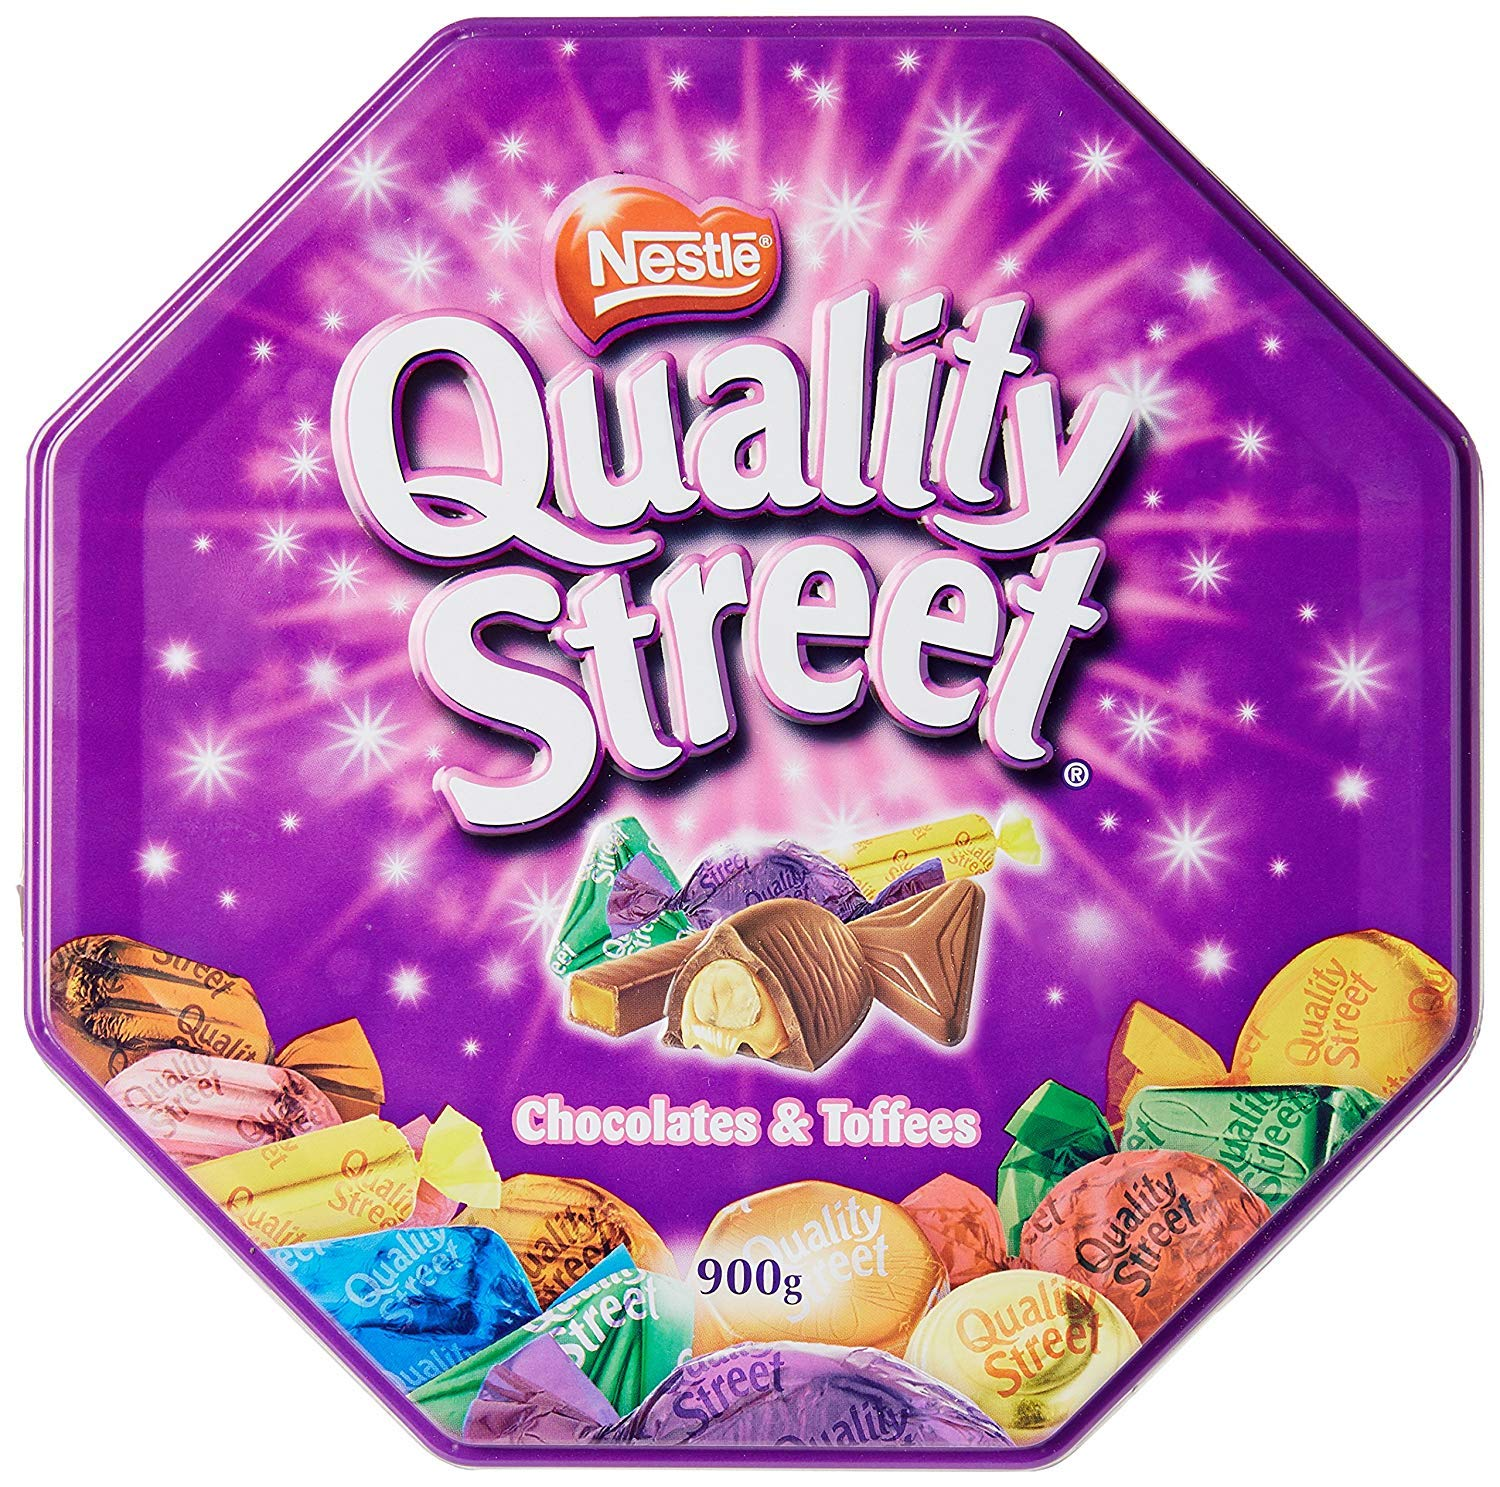 Nestle Quality Street Chocolates, 900 GM (Assorted, Pack - 2) by Nestle